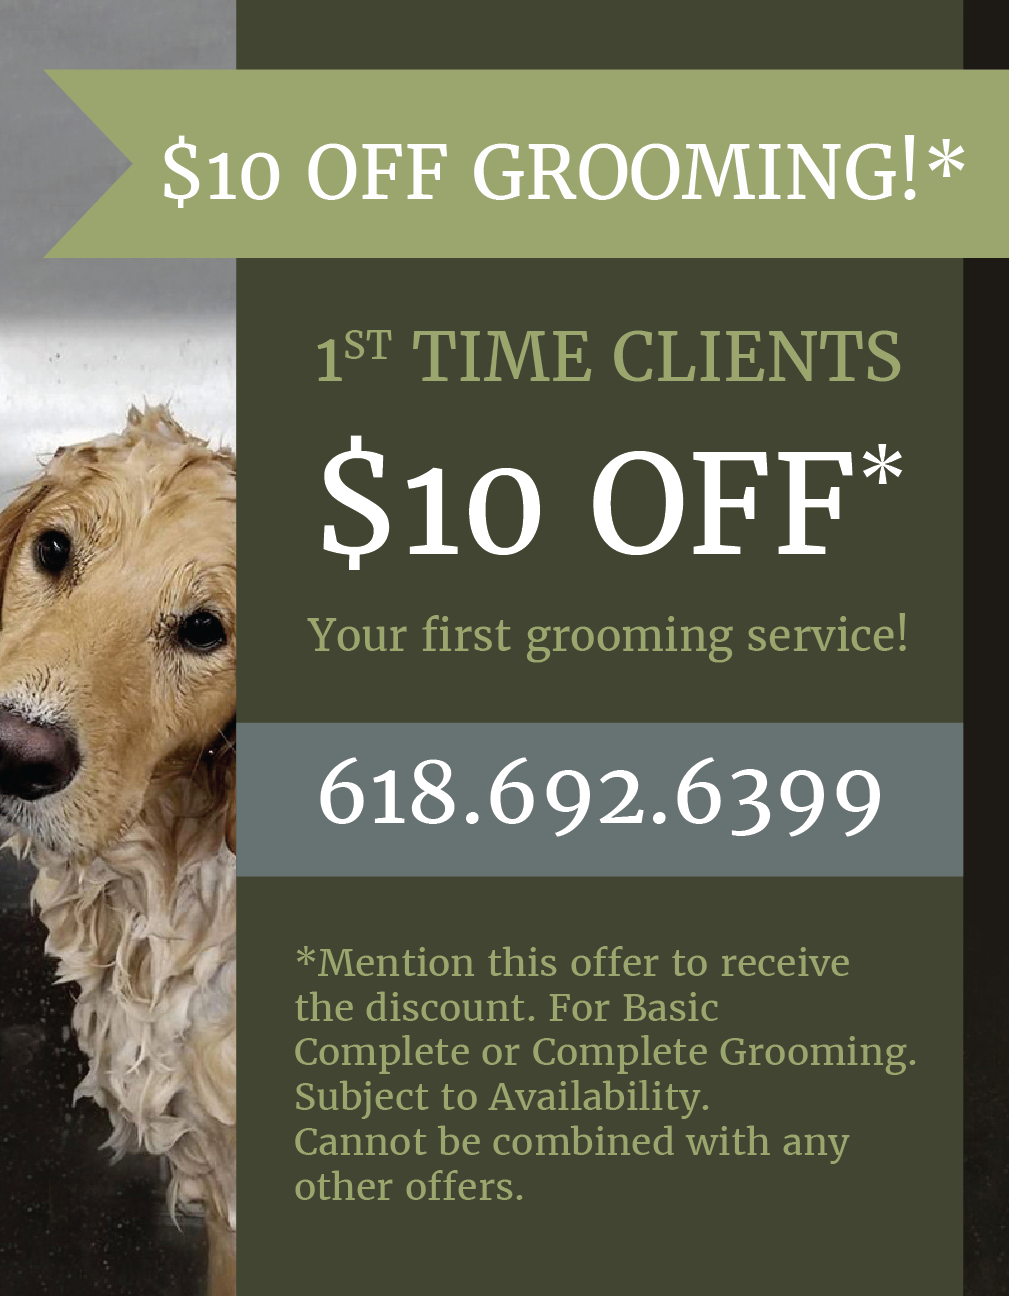 Special Grooming Offer from LaBest Pet Resort and Spa